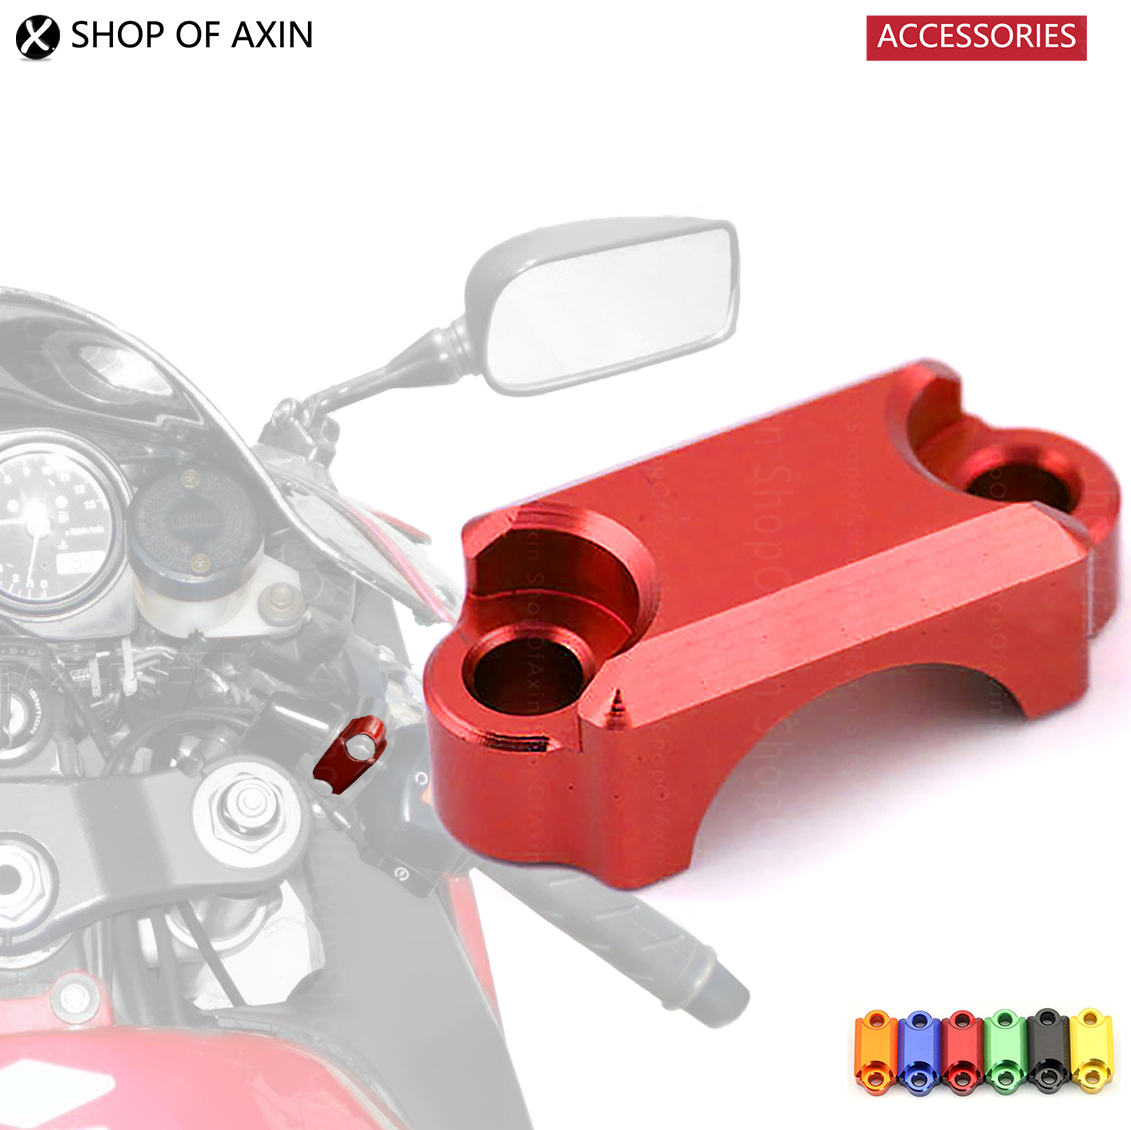 Motorcycle CNC Brake Master Cylinder Clamp Handlebar Bar Clamp Cover For HONDA CBR 600R 1000RR 954 XR 400 650 CB600F CRF 250 450 4x canbus error free t10 194 168 w5w 5050 led 6 smd white side wedge light bulb